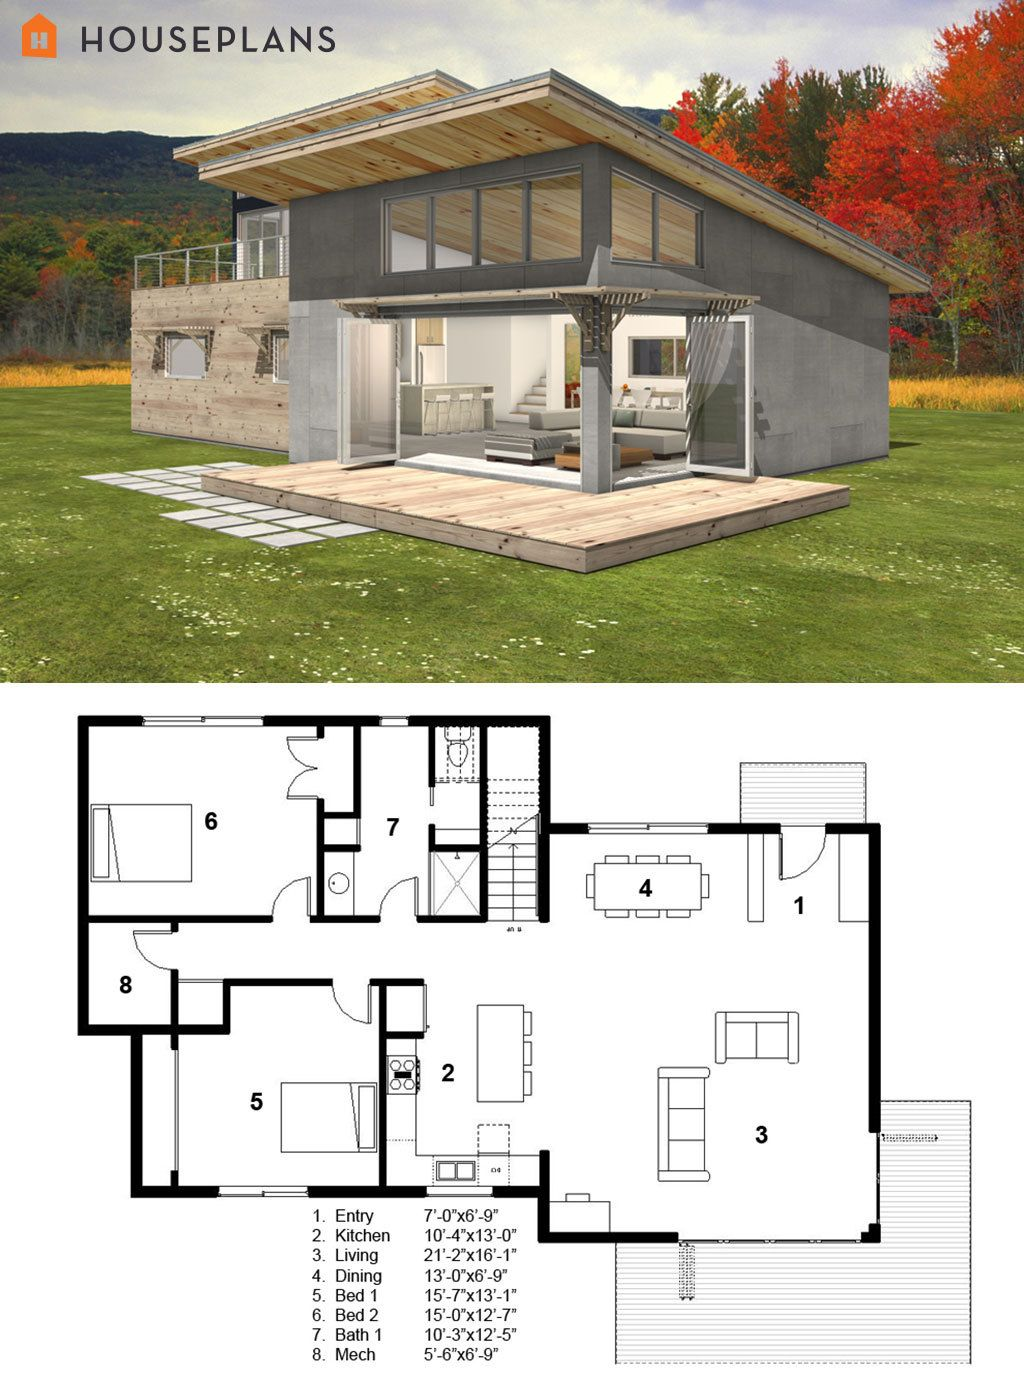 Modern style house plan 3 beds baths 2115 sq ft for Modern house plans with basement